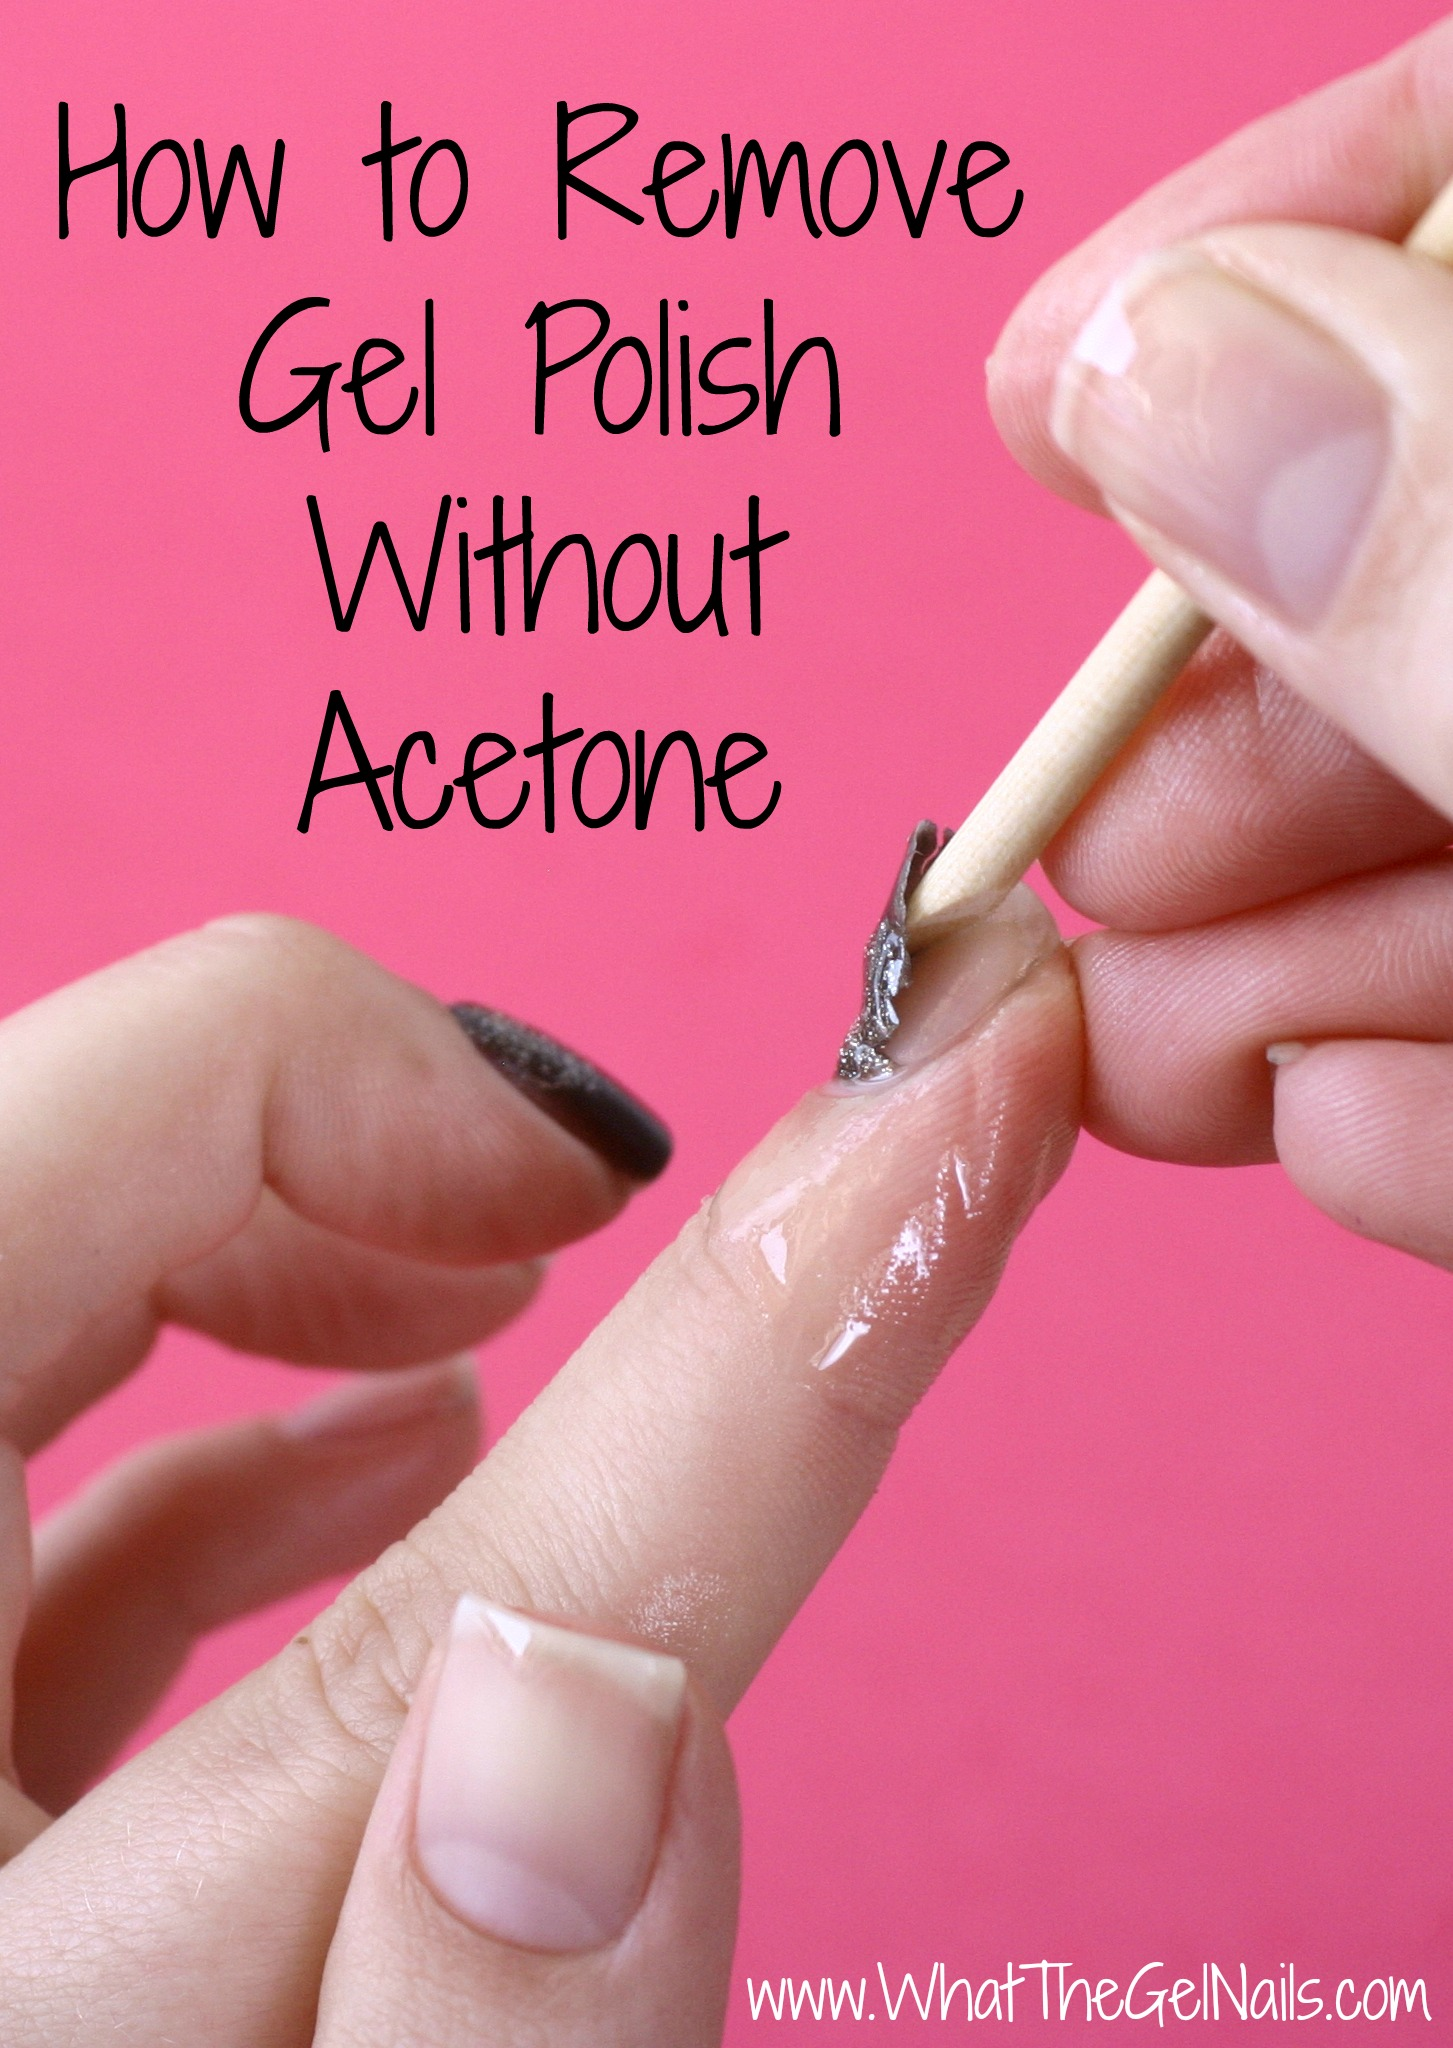 How to Remove Gel Polish Without Acetone